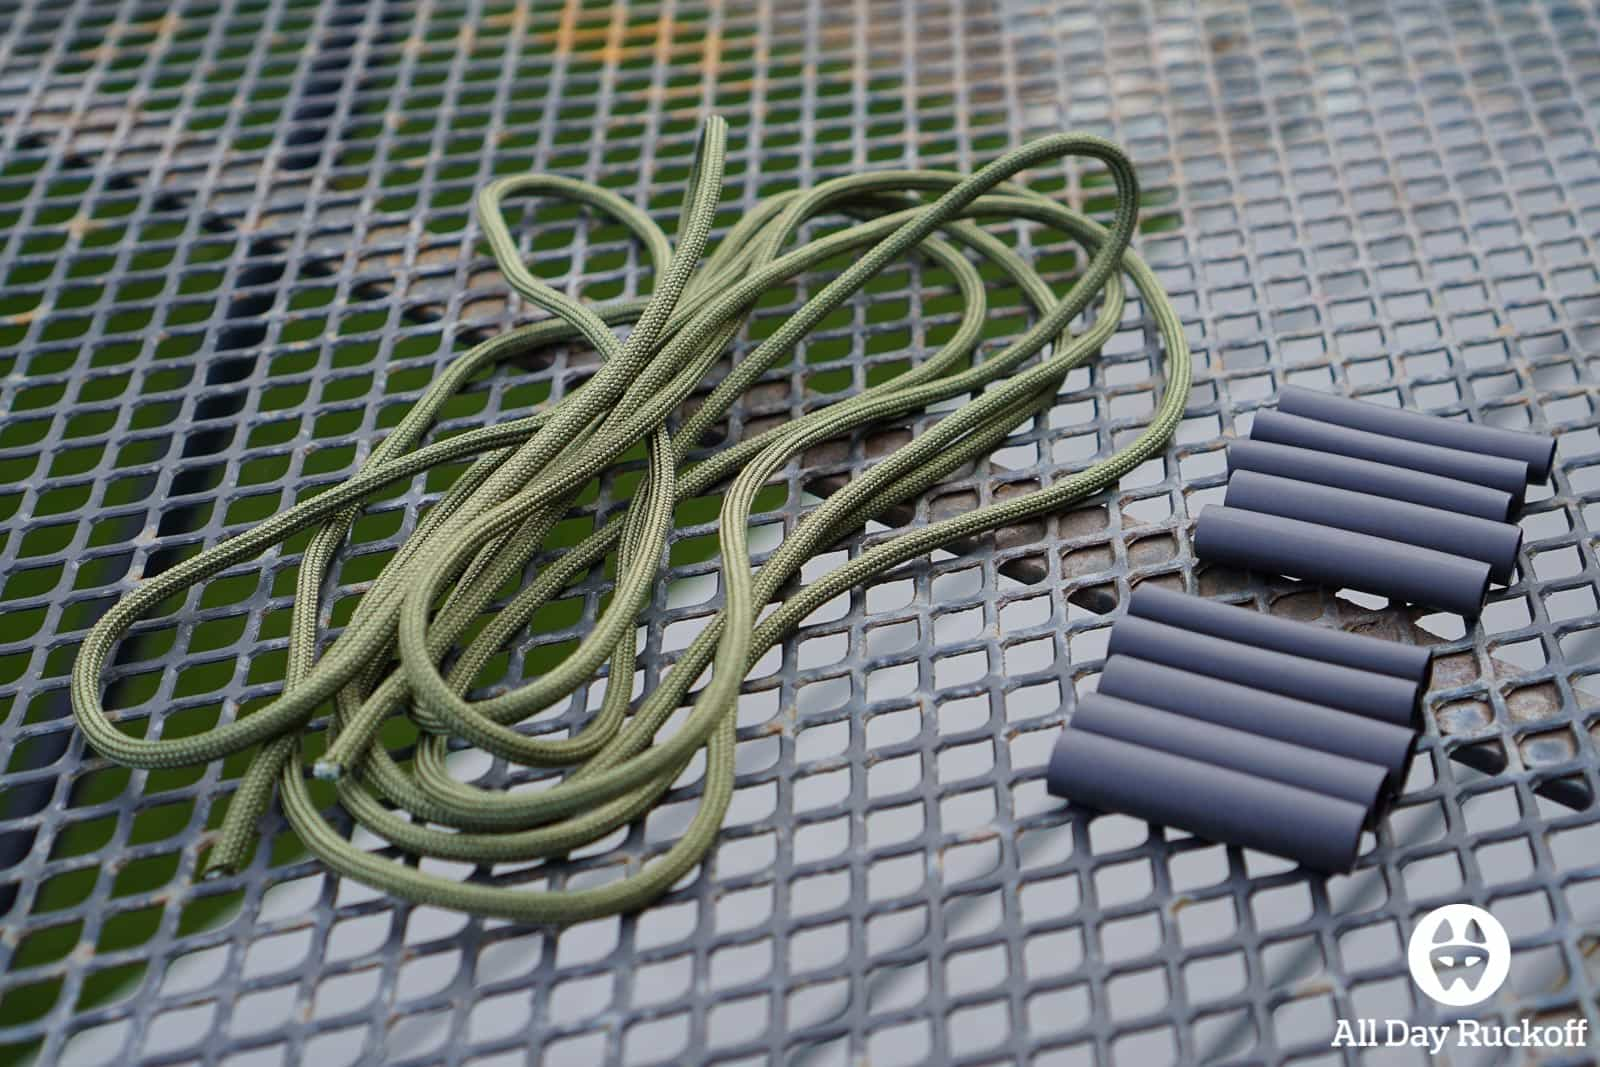 GORUCK Zipper Pull Kit - Unpackaged